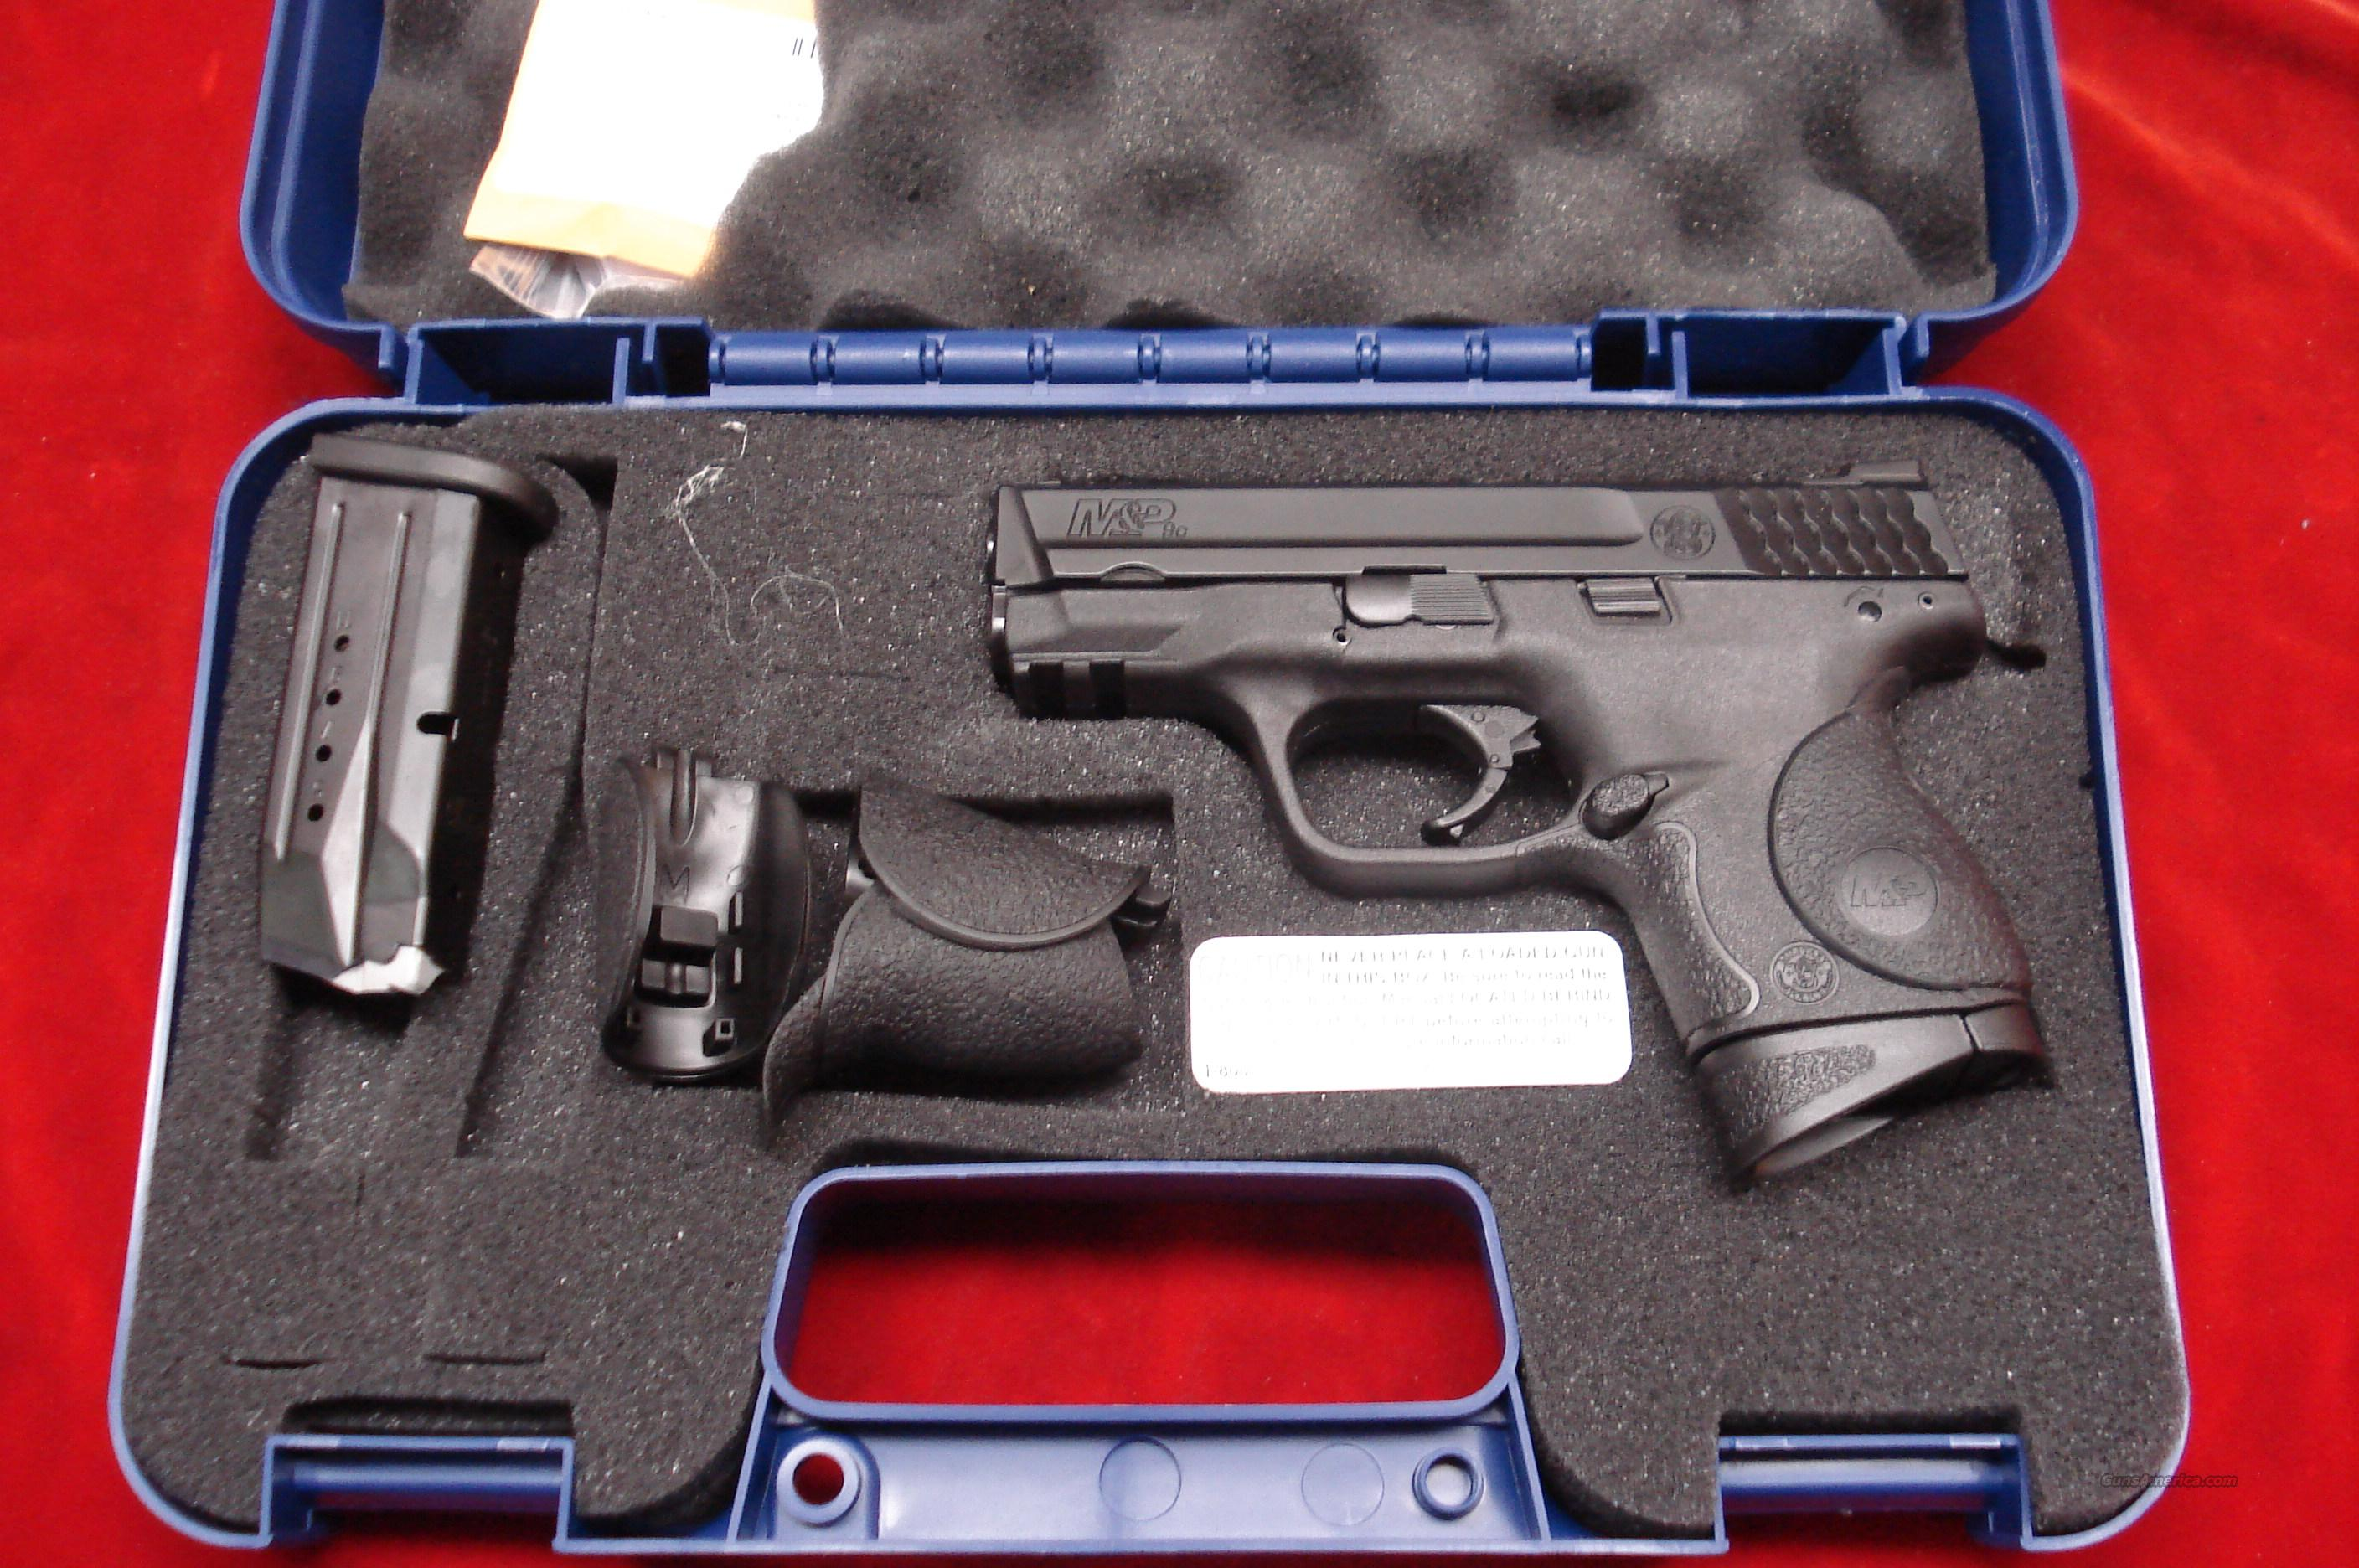 SMITH AND WESSON M&P COMPACT 9MM WITH CRIMSON TRACE LASER GRIPS NEW   Guns > Pistols > Smith & Wesson Pistols - Autos > Polymer Frame